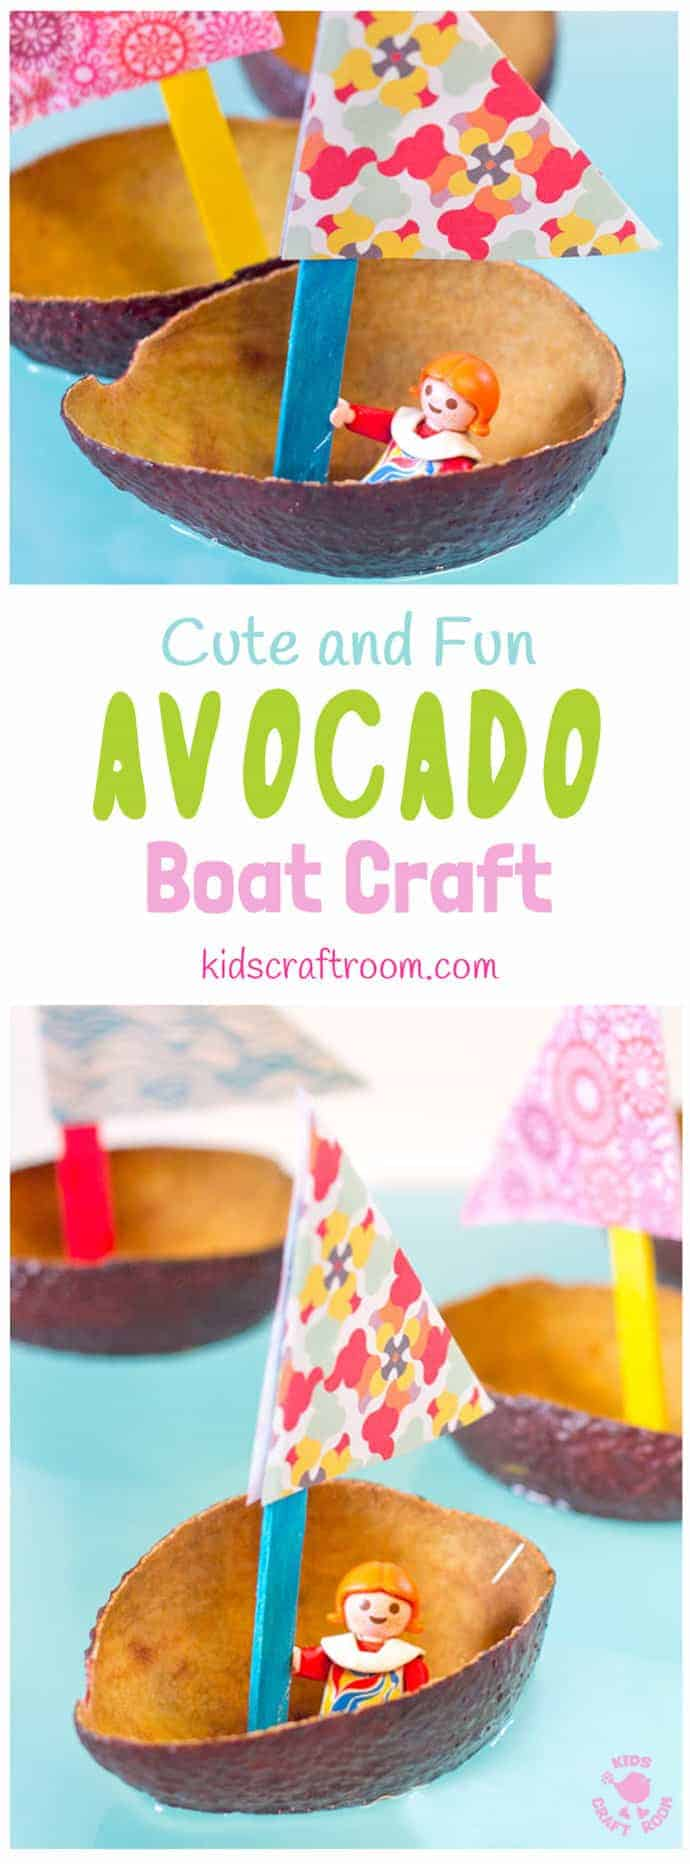 CUTE AVOCADO BOAT CRAFT FOR KIDS. Homemade boat crafts for kids encourage imaginative play where small world play figures can sail around the wading pool or bath. Learn about floating, sinking, buoyancy and weight bearing. A fun boat craft for Spring and Summer. #boat #boatcrafts #homemadeboats #paperboats #kidscrafts #craftsforkids #waterplay #kidscraftroom #toyboats #springcrafts #summercrafts